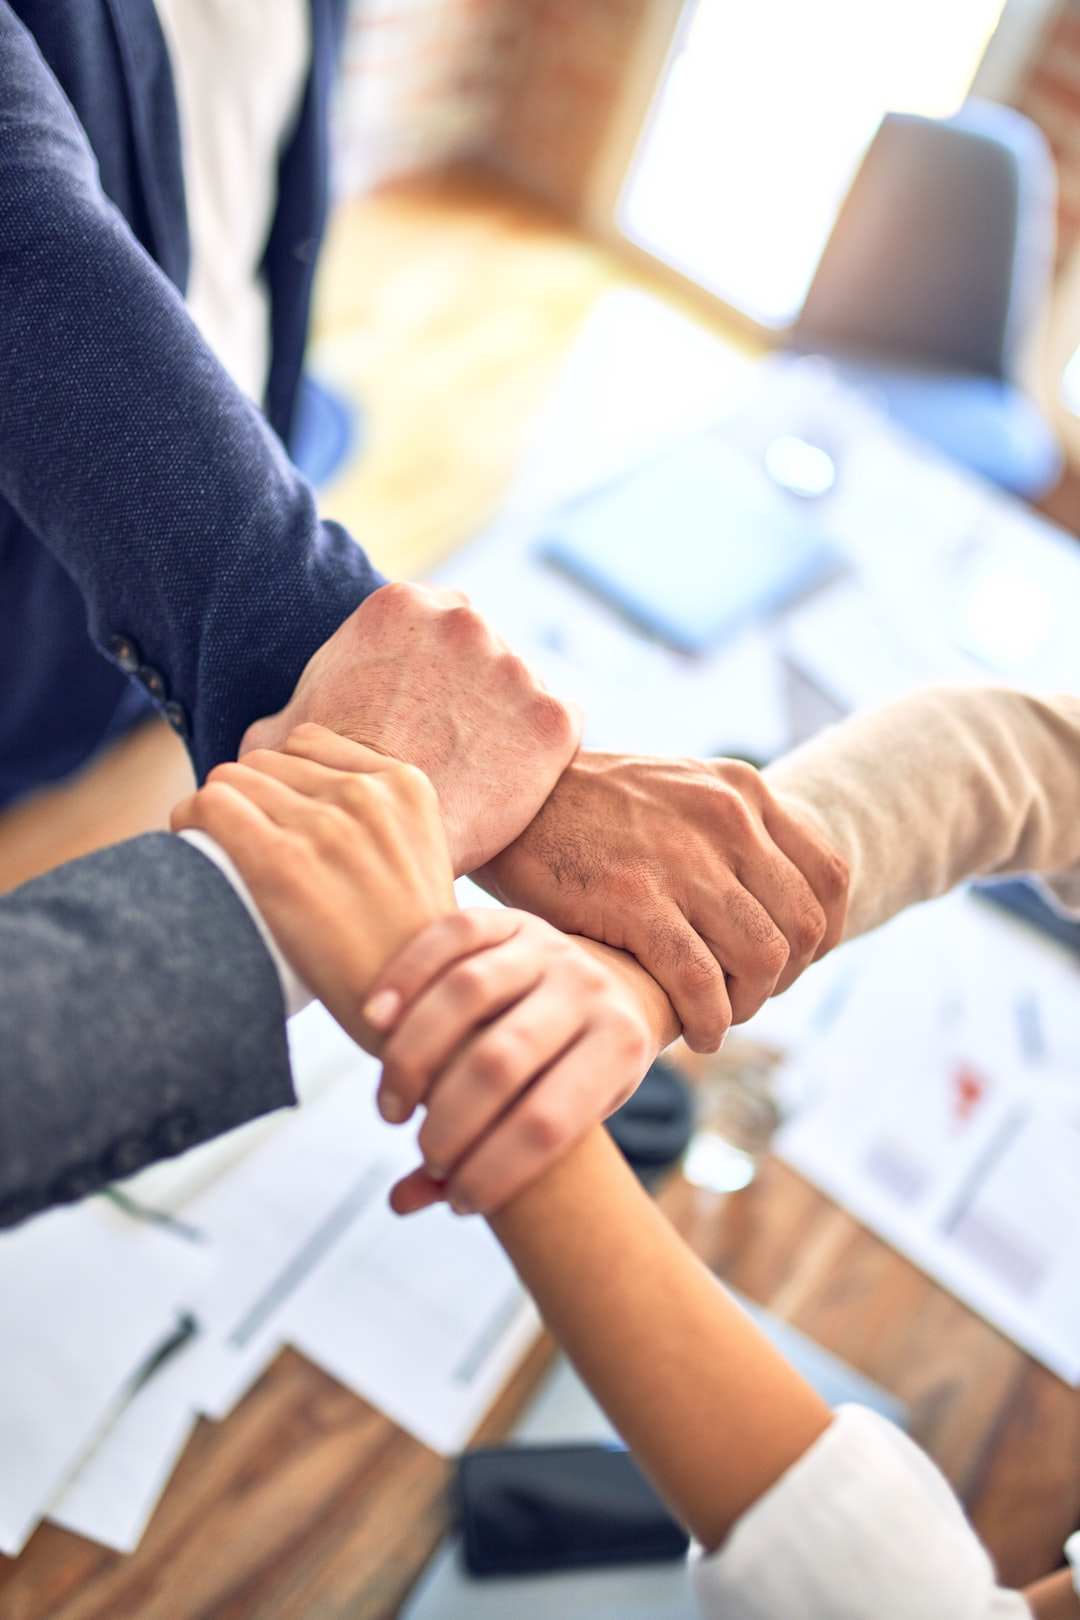 How to Build Trust in a Workplace Between Coworkers